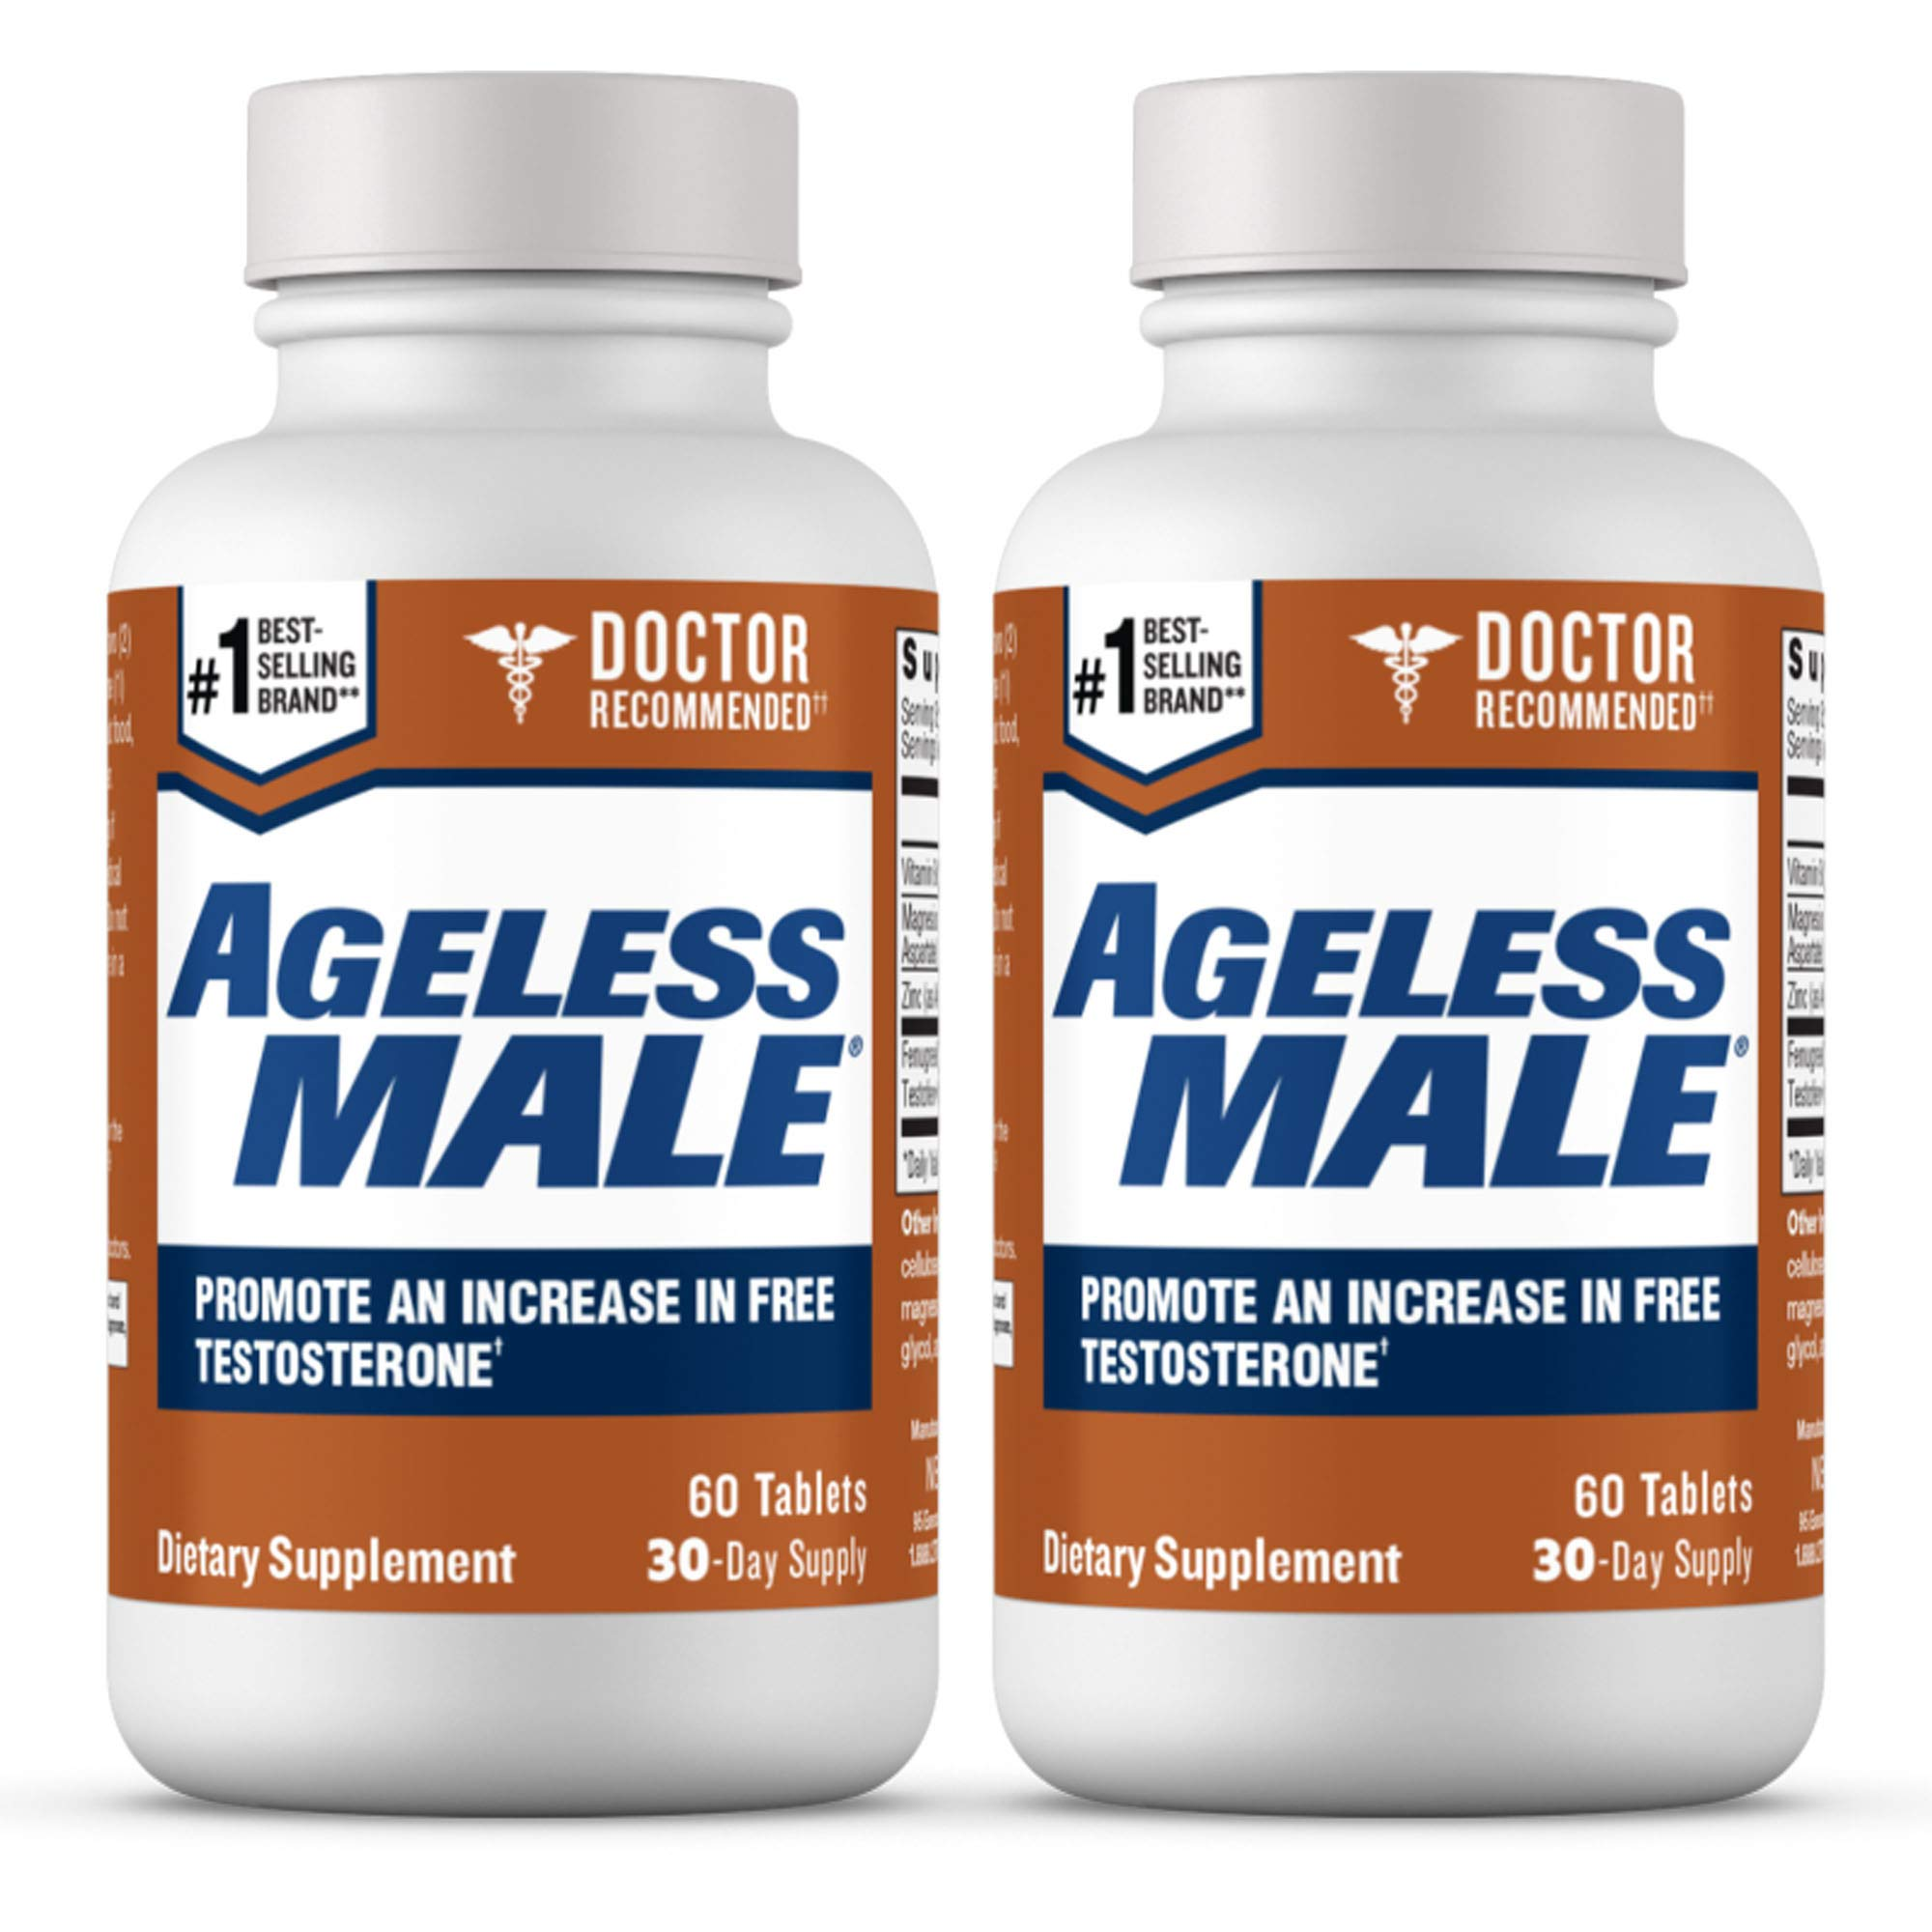 Ageless Male Free Testosterone Booster